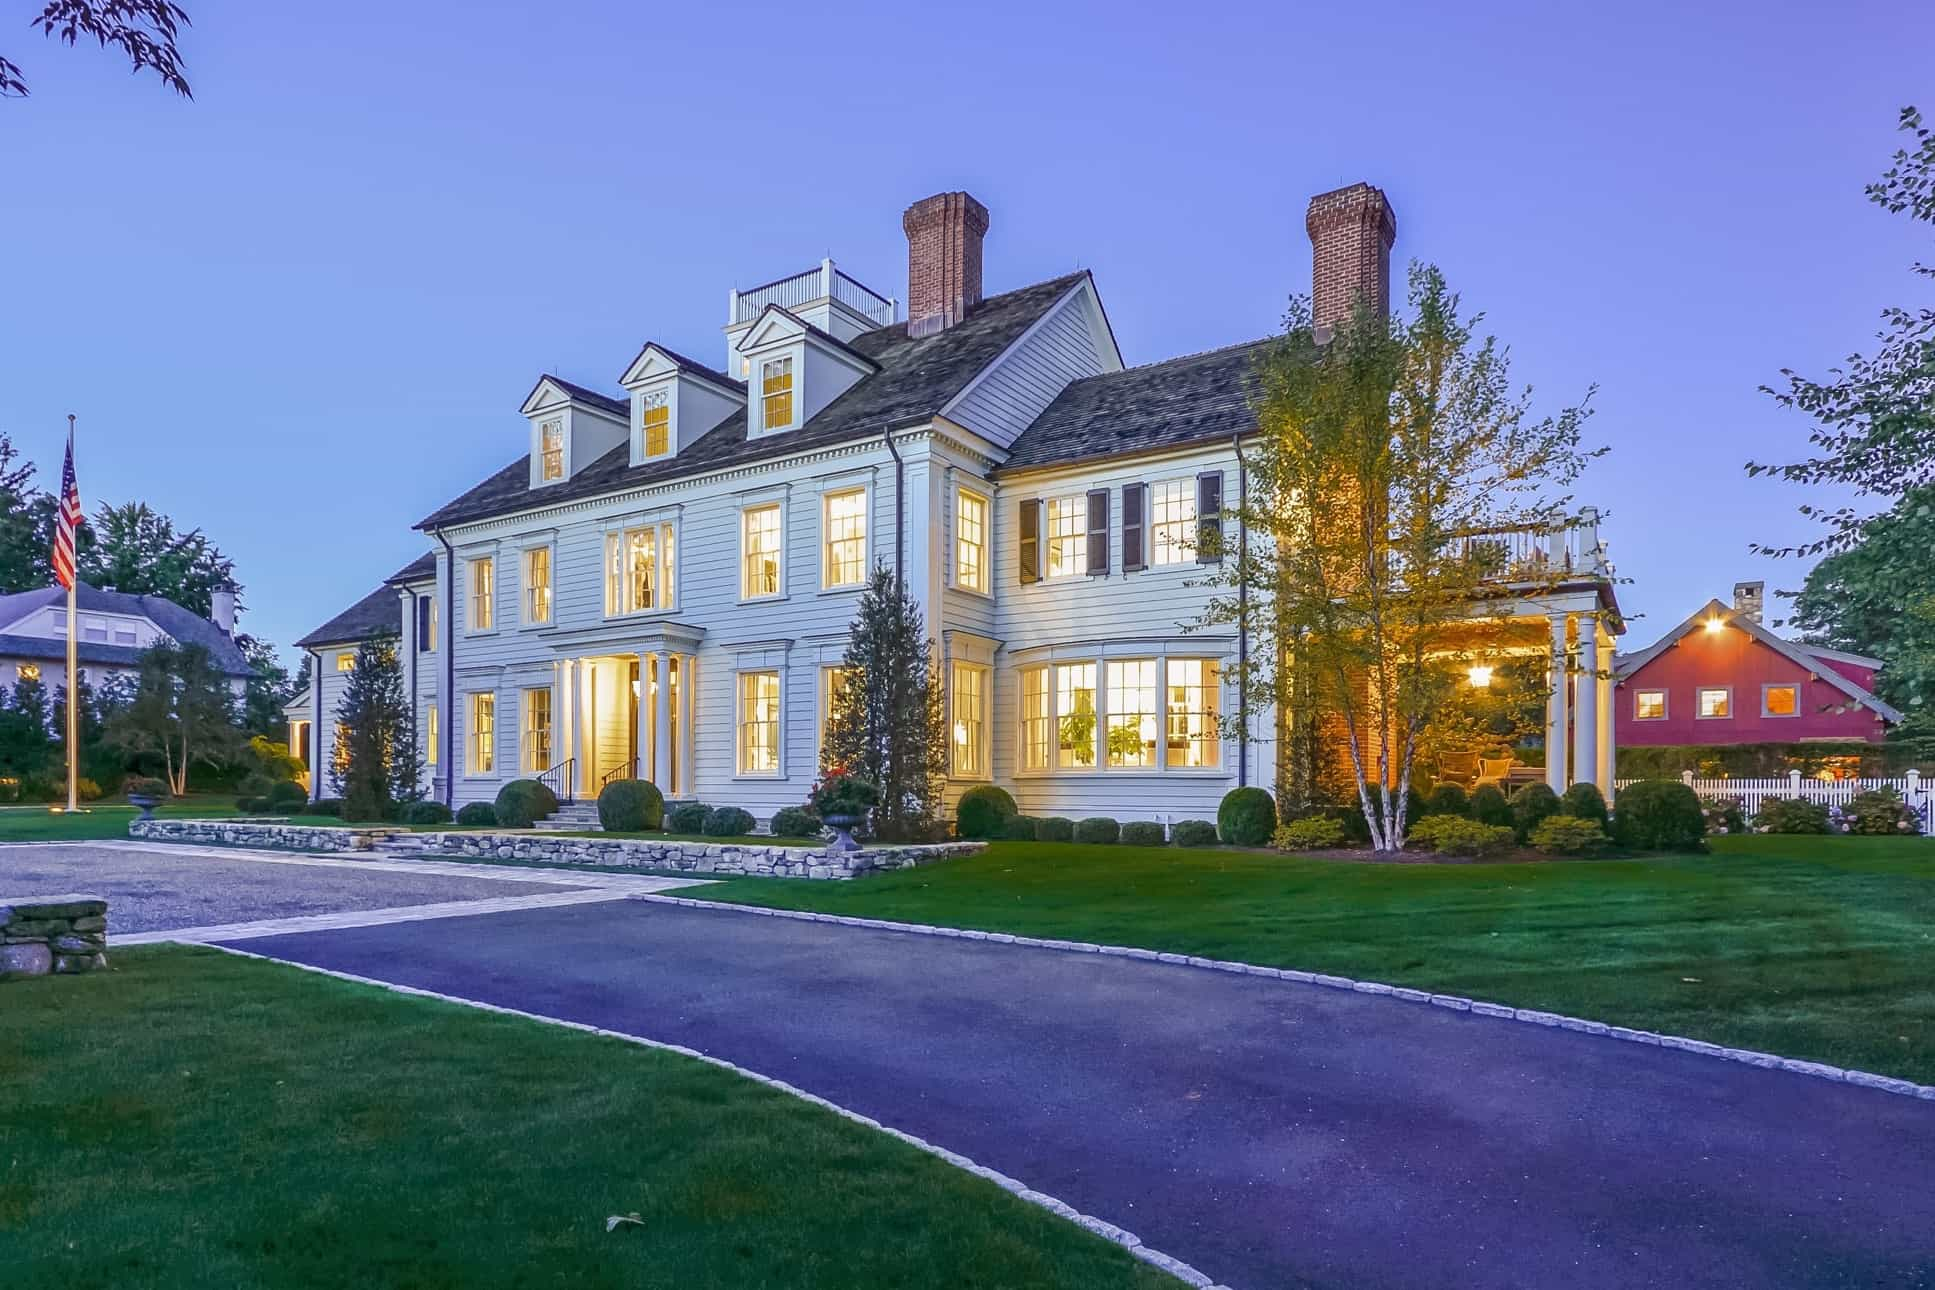 Featured Image of Classic Colonial Home With Gray Shingle Roof And Red Brick Chimneys